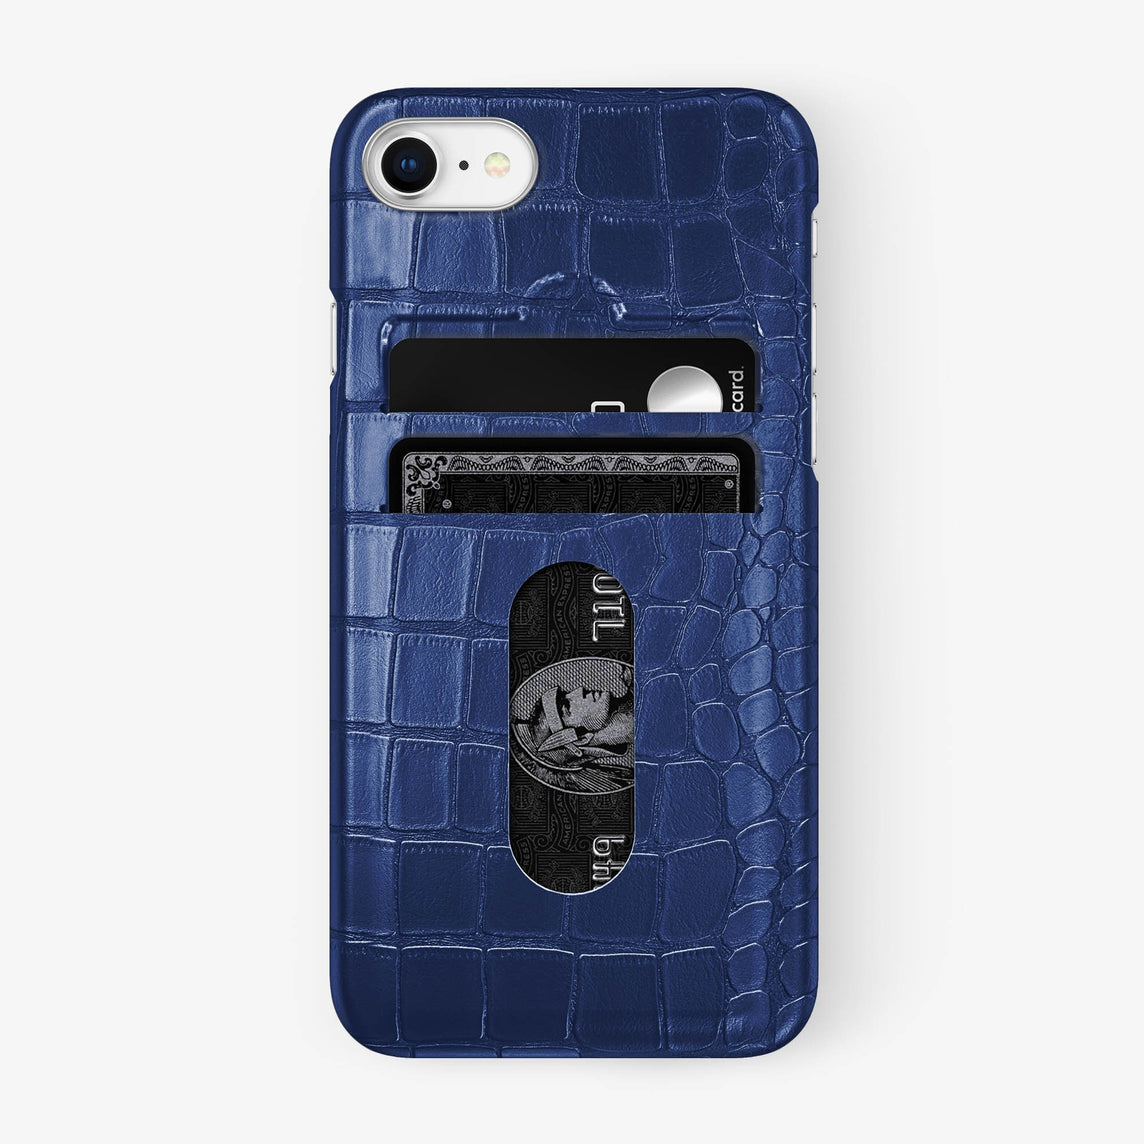 Alligator Card Holder Case iPhone 7/8 | Navy Blue - Stainless Steel - Hadoro